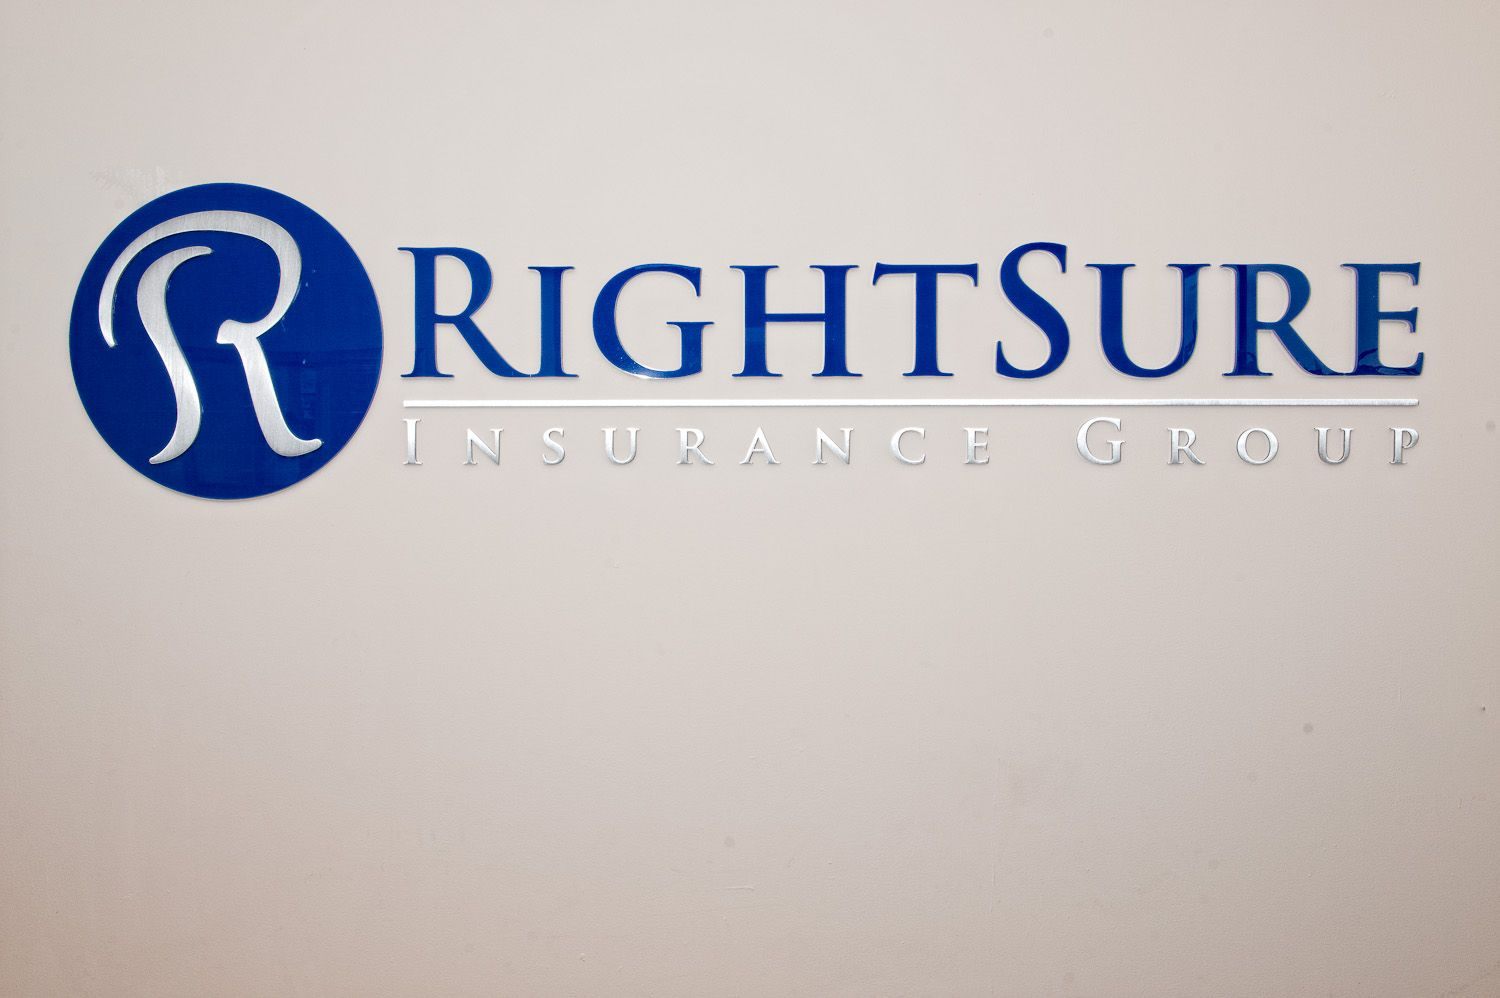 Rightsure Insurance Mutual Of Enumclaw Agents In Tucson Arizona